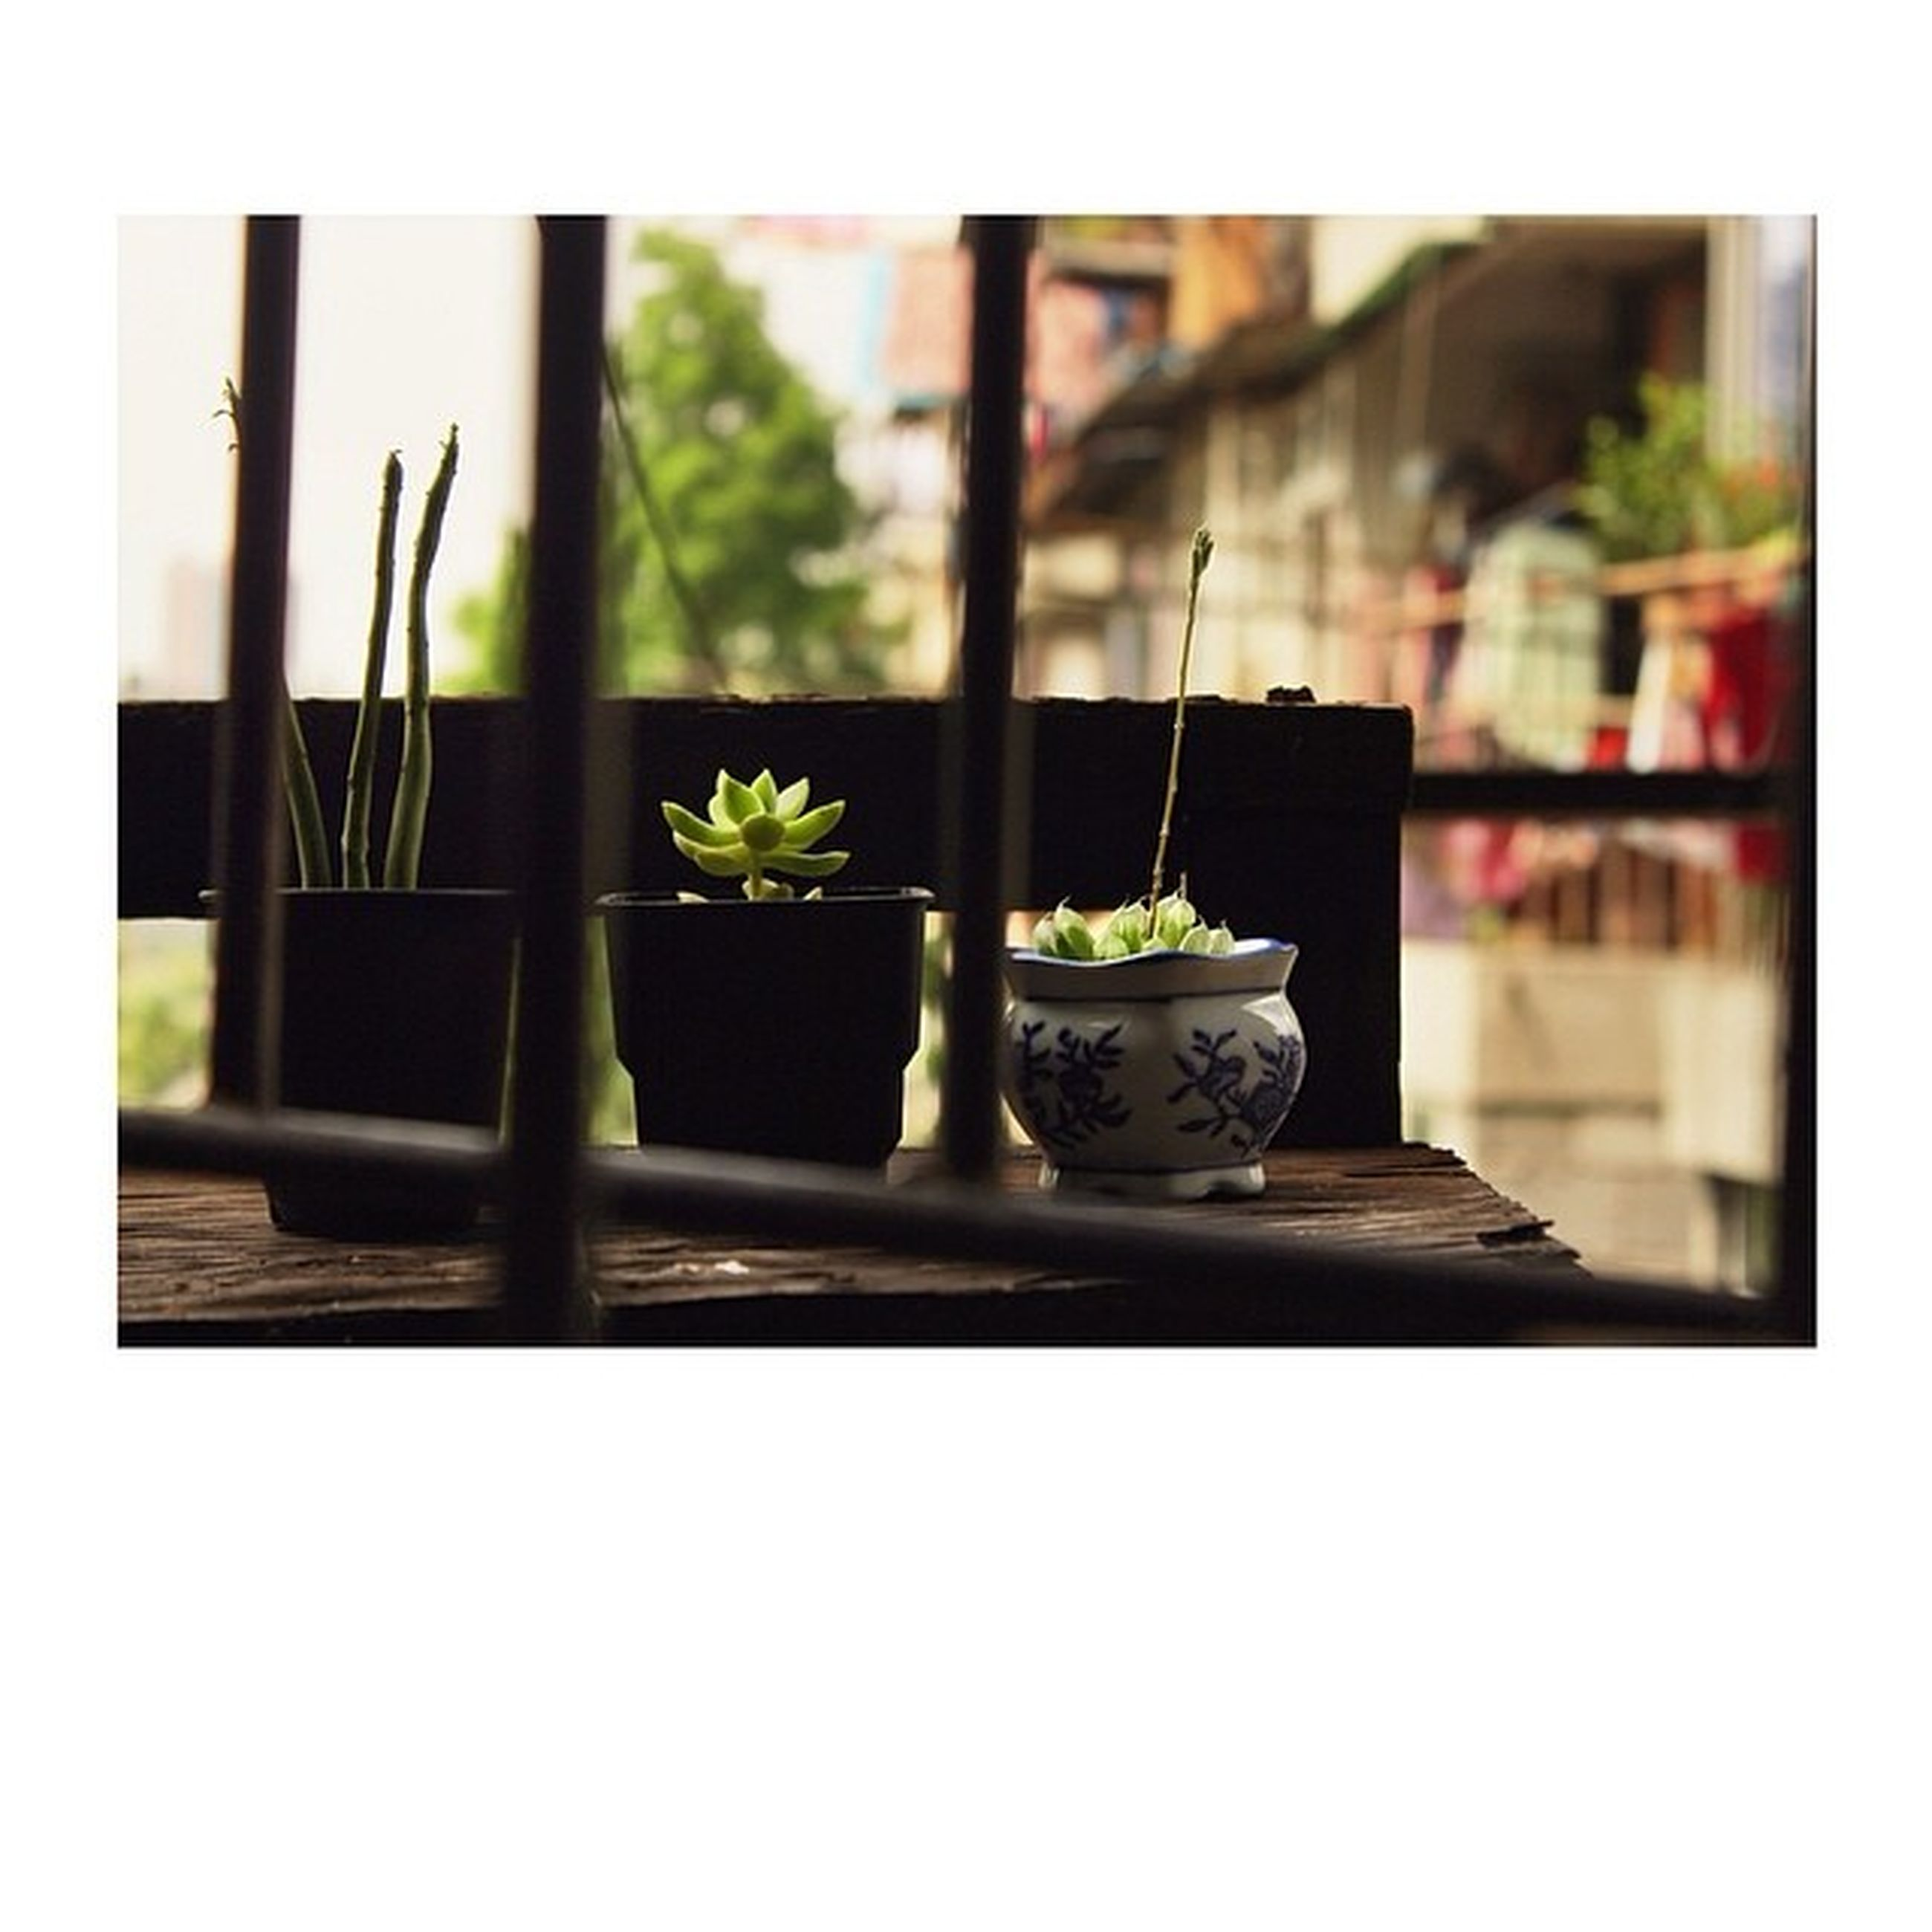 transfer print, potted plant, auto post production filter, indoors, plant, flower, growth, window sill, vase, window, flower pot, glass - material, close-up, focus on foreground, day, table, freshness, home interior, no people, sunlight